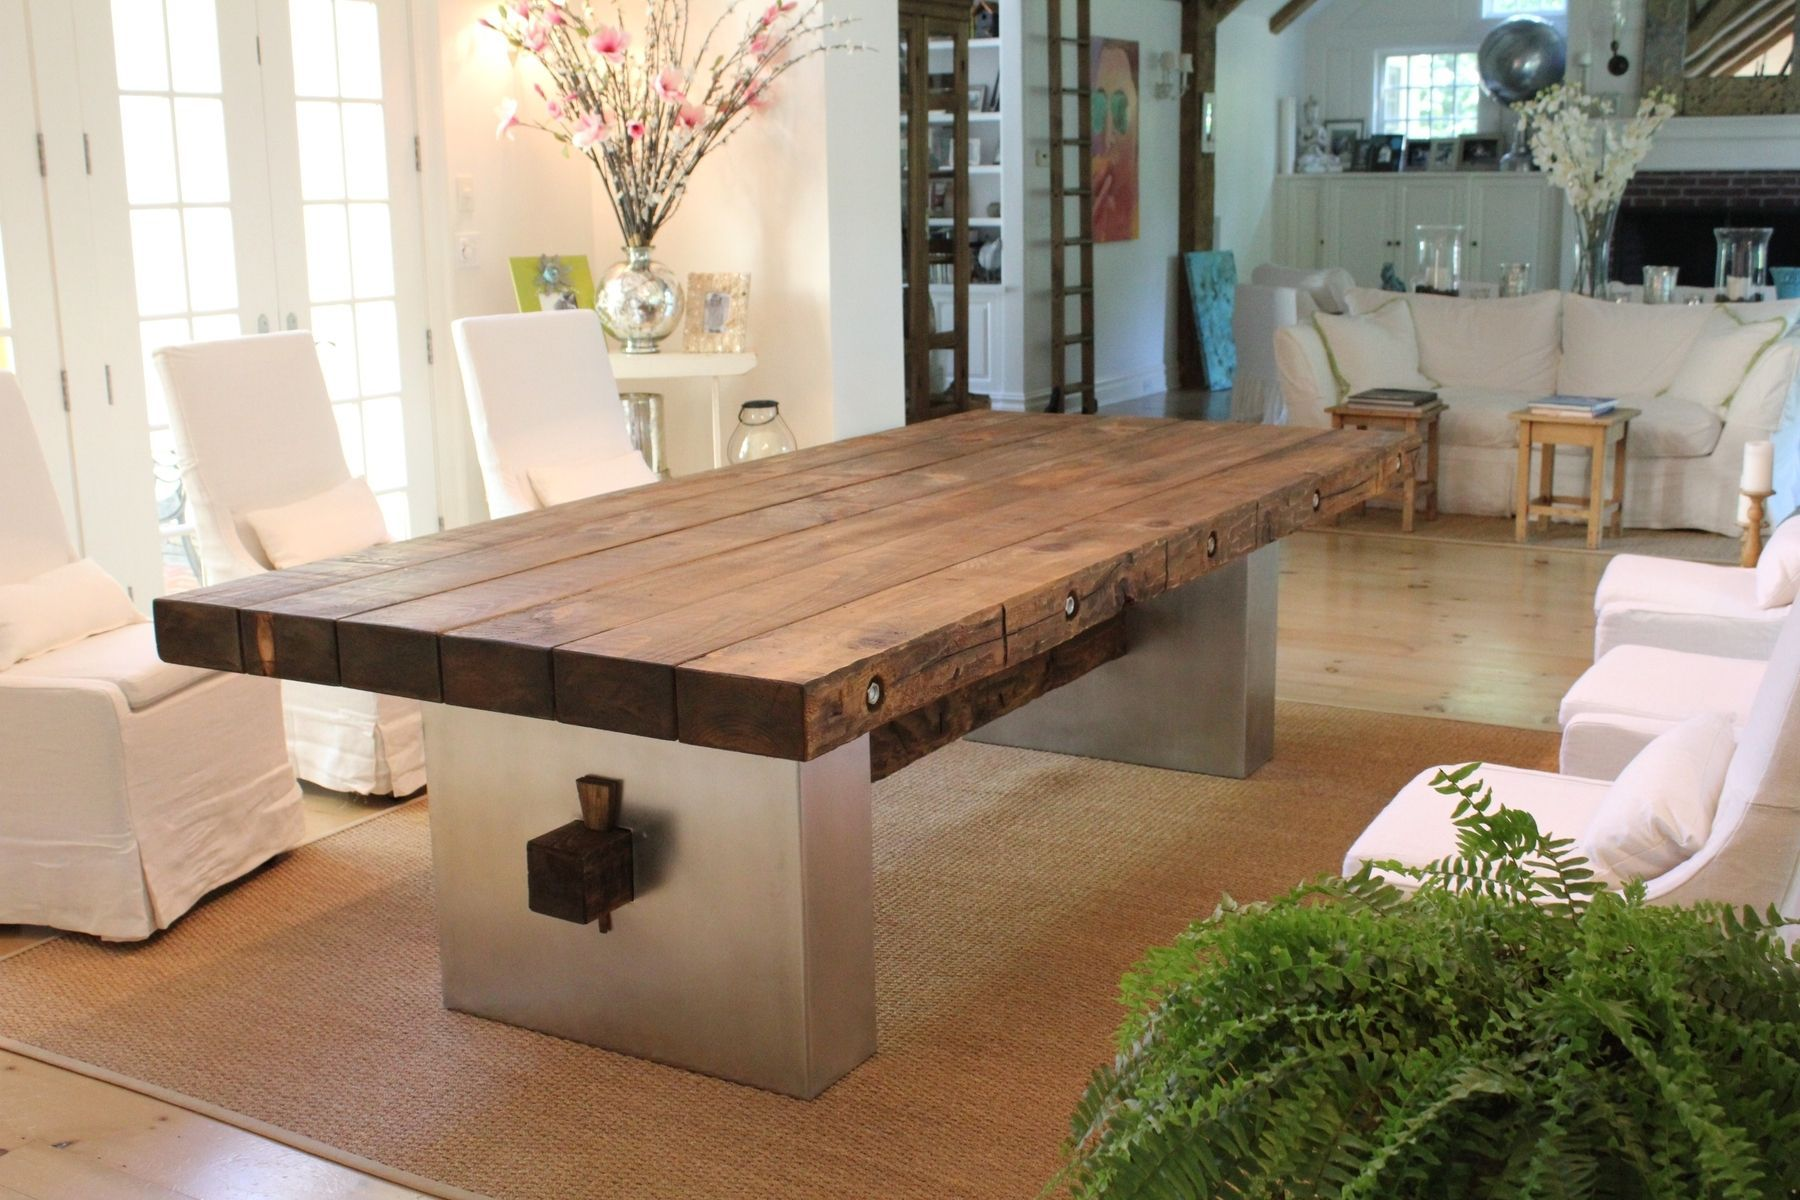 Barnwood+dining+room+tables | Furniture Dining Room Kitchen Dining Tables  Barn Wood Dining Table